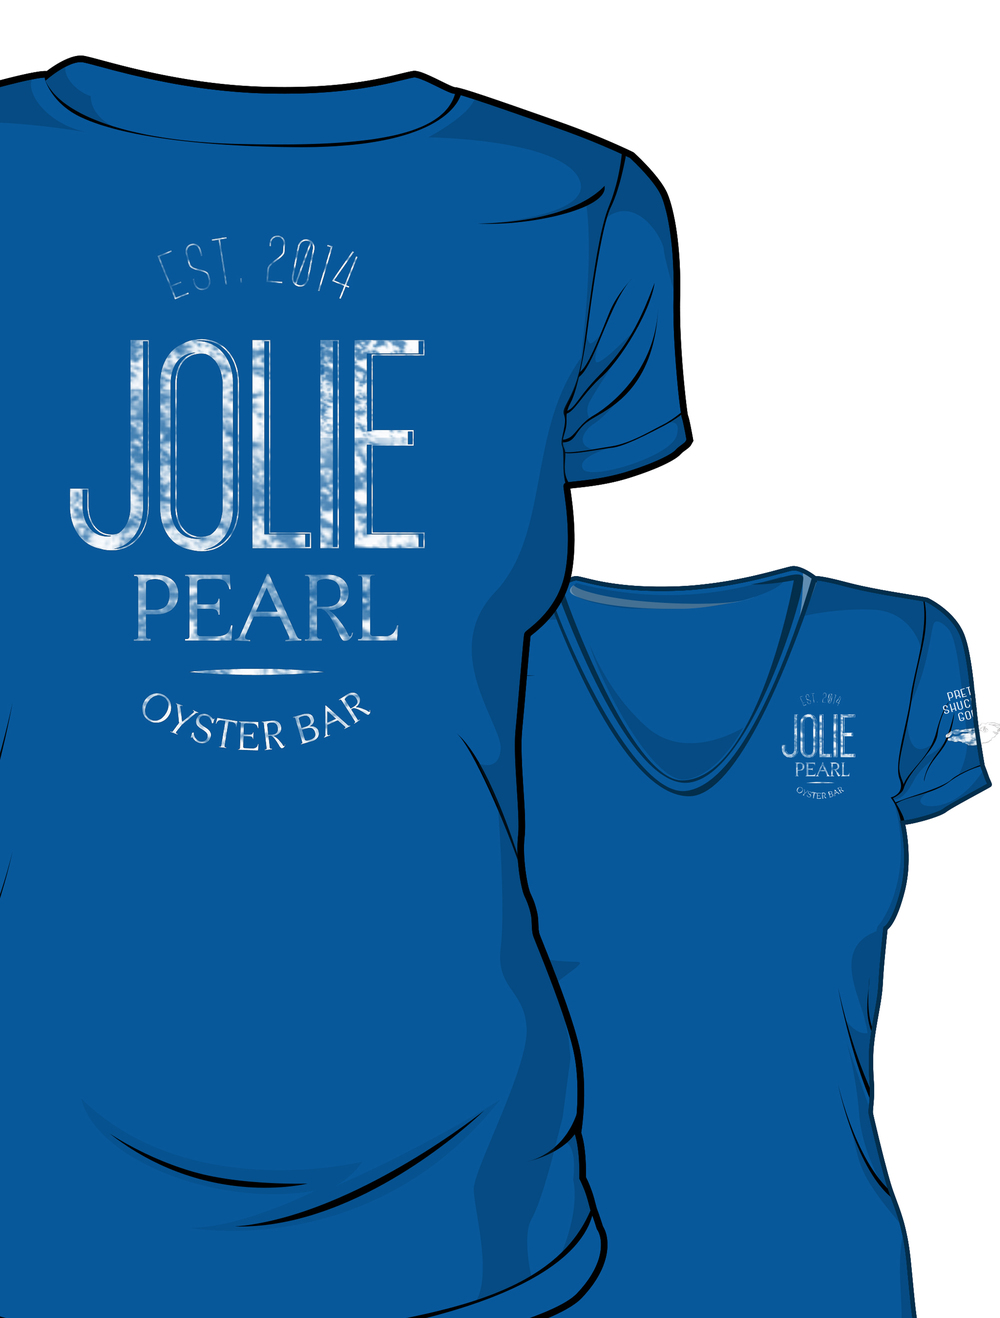 Jolie Pearl Oyster Bar Uniform Shirts